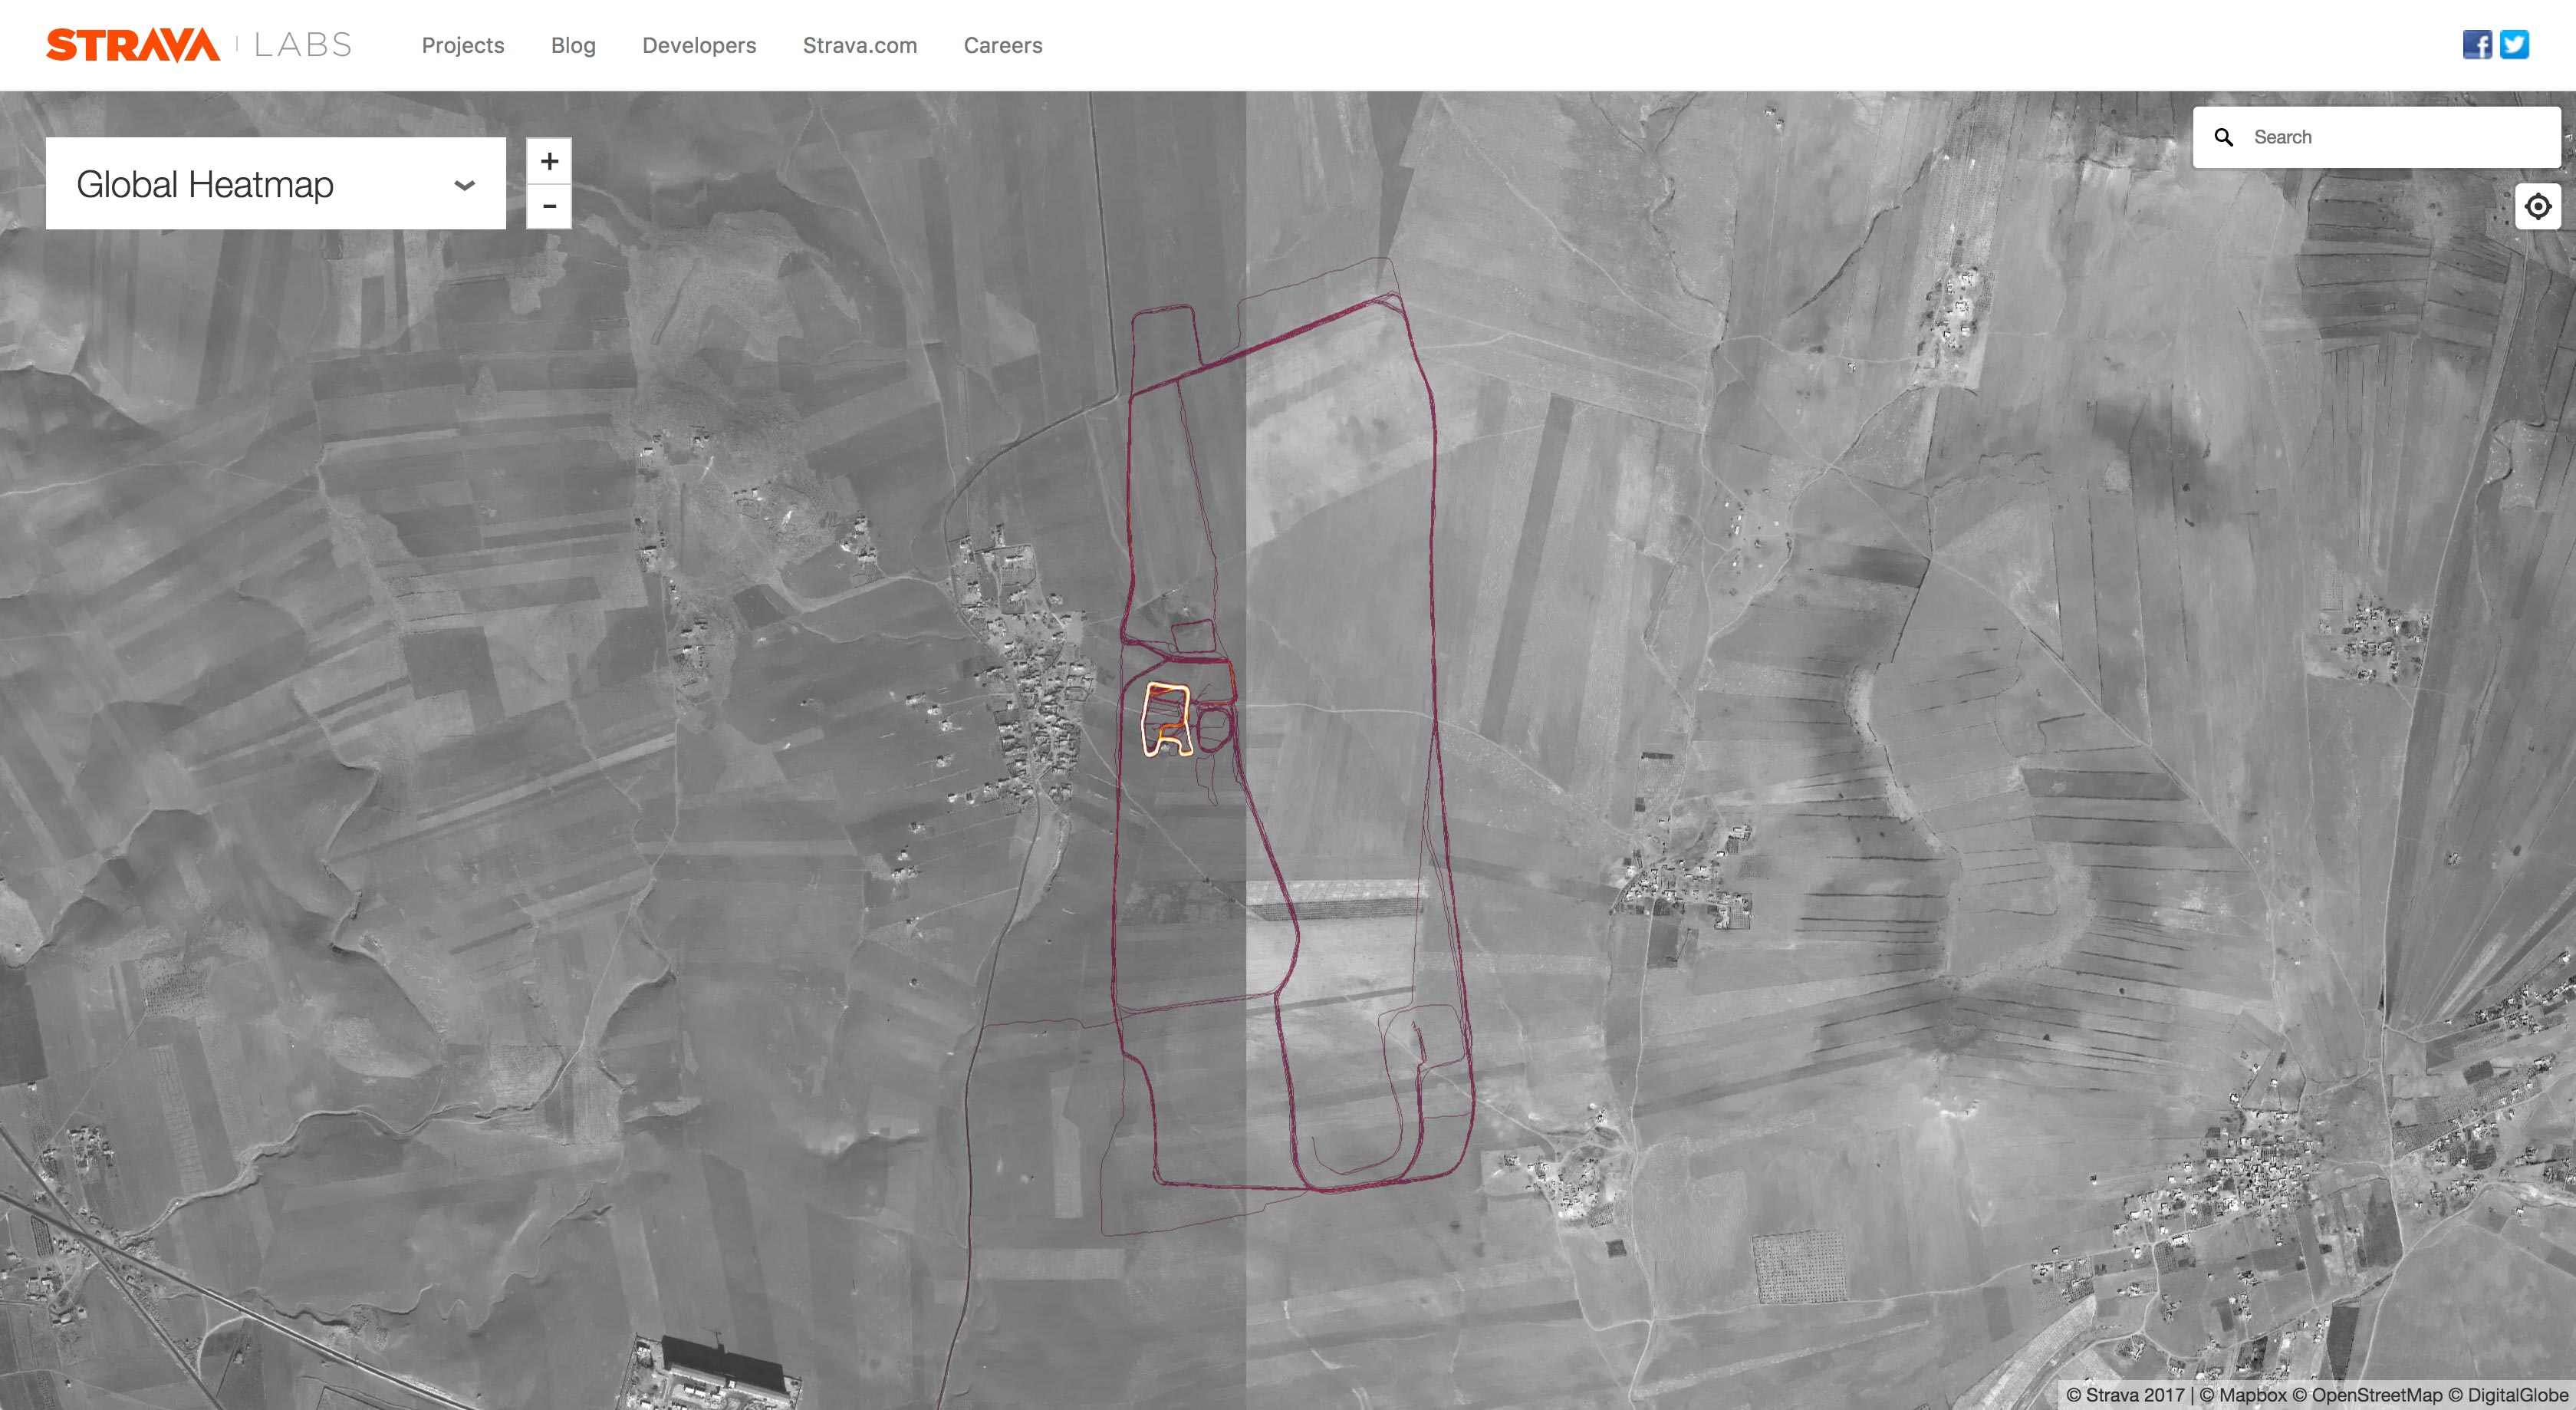 Strava heatmap of Sarrin air base, Syria